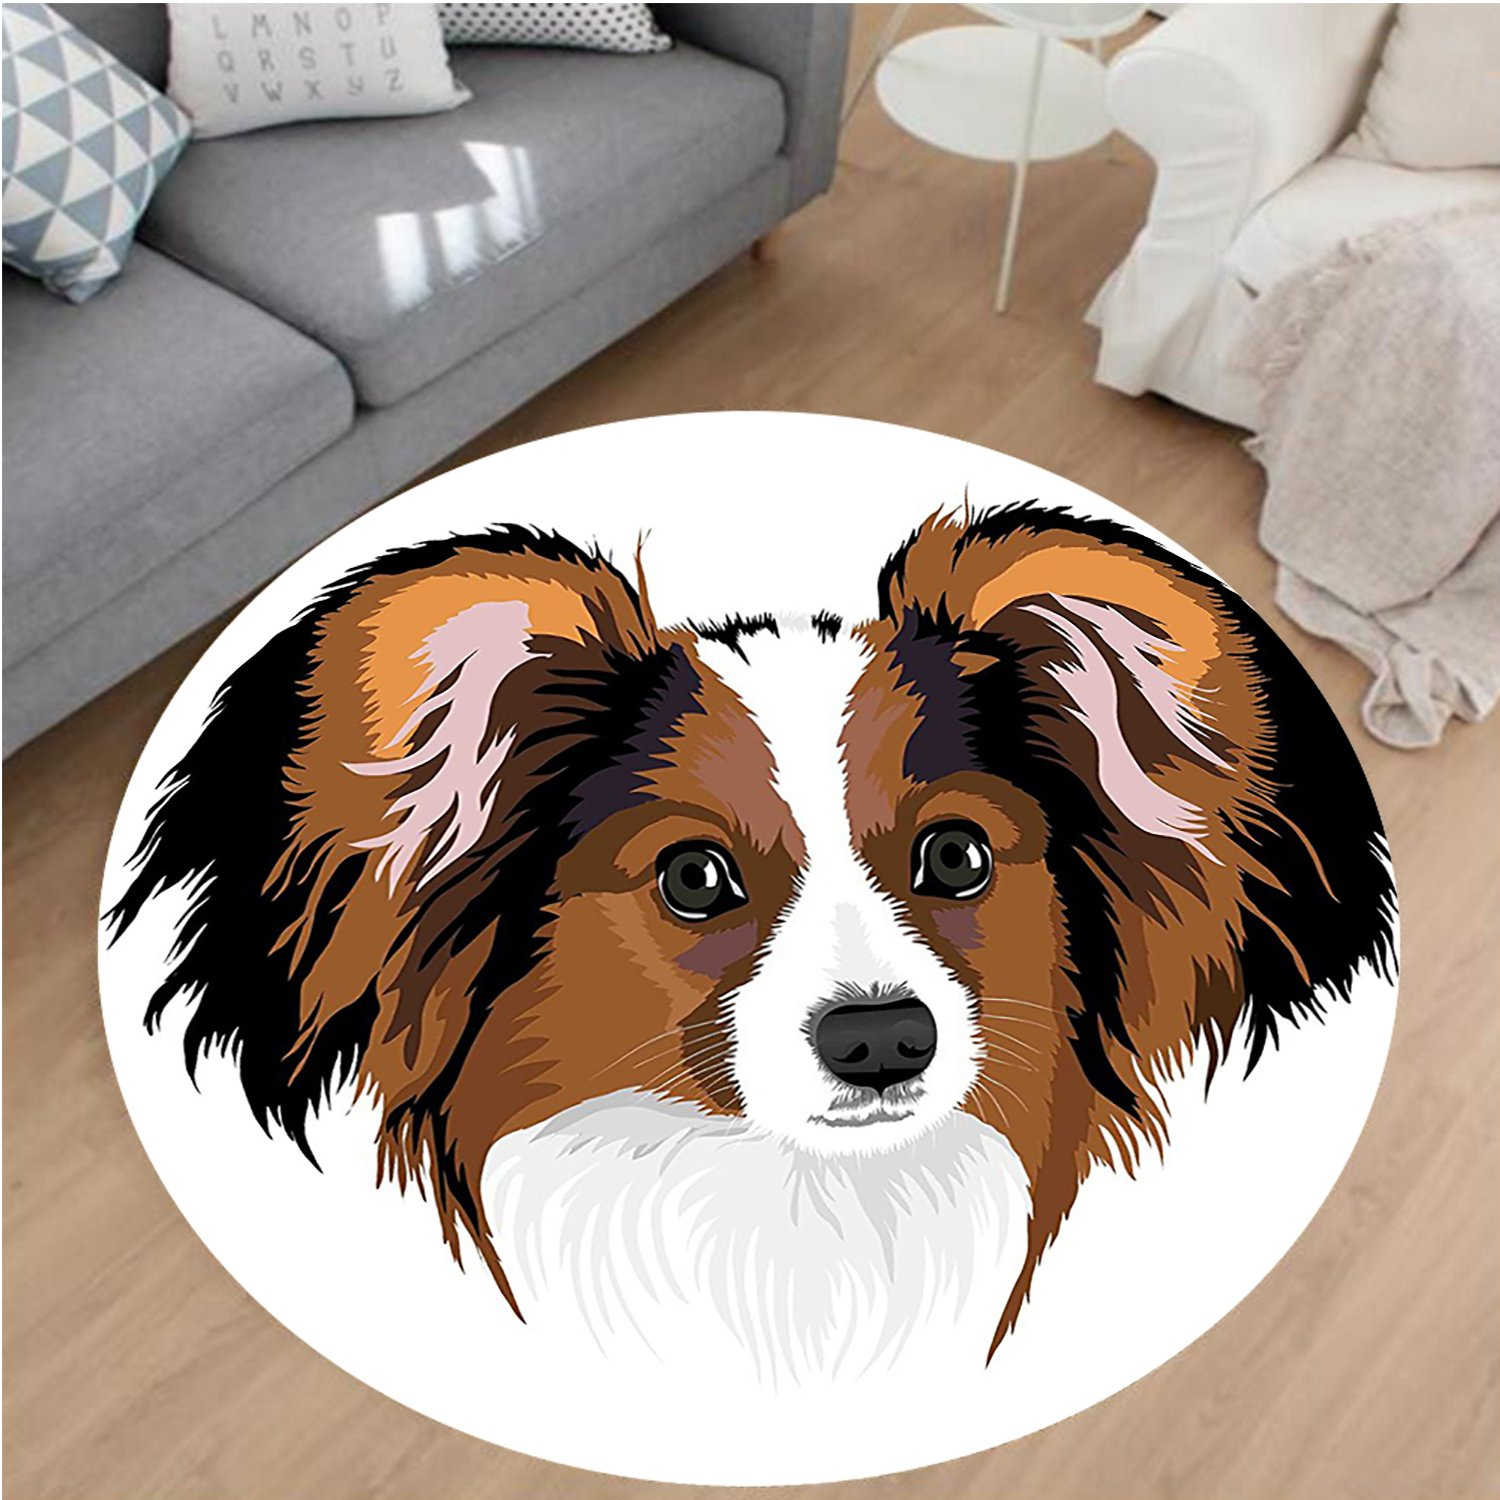 Nalahome Modern Flannel Microfiber Non-Slip Machine Washable Round Area Rug-Cute Smart Adorable Best Friend Dog Movie Pet Cartoon Artwork Image Cinnamon Black White area rugs Home Decor-Round 71''